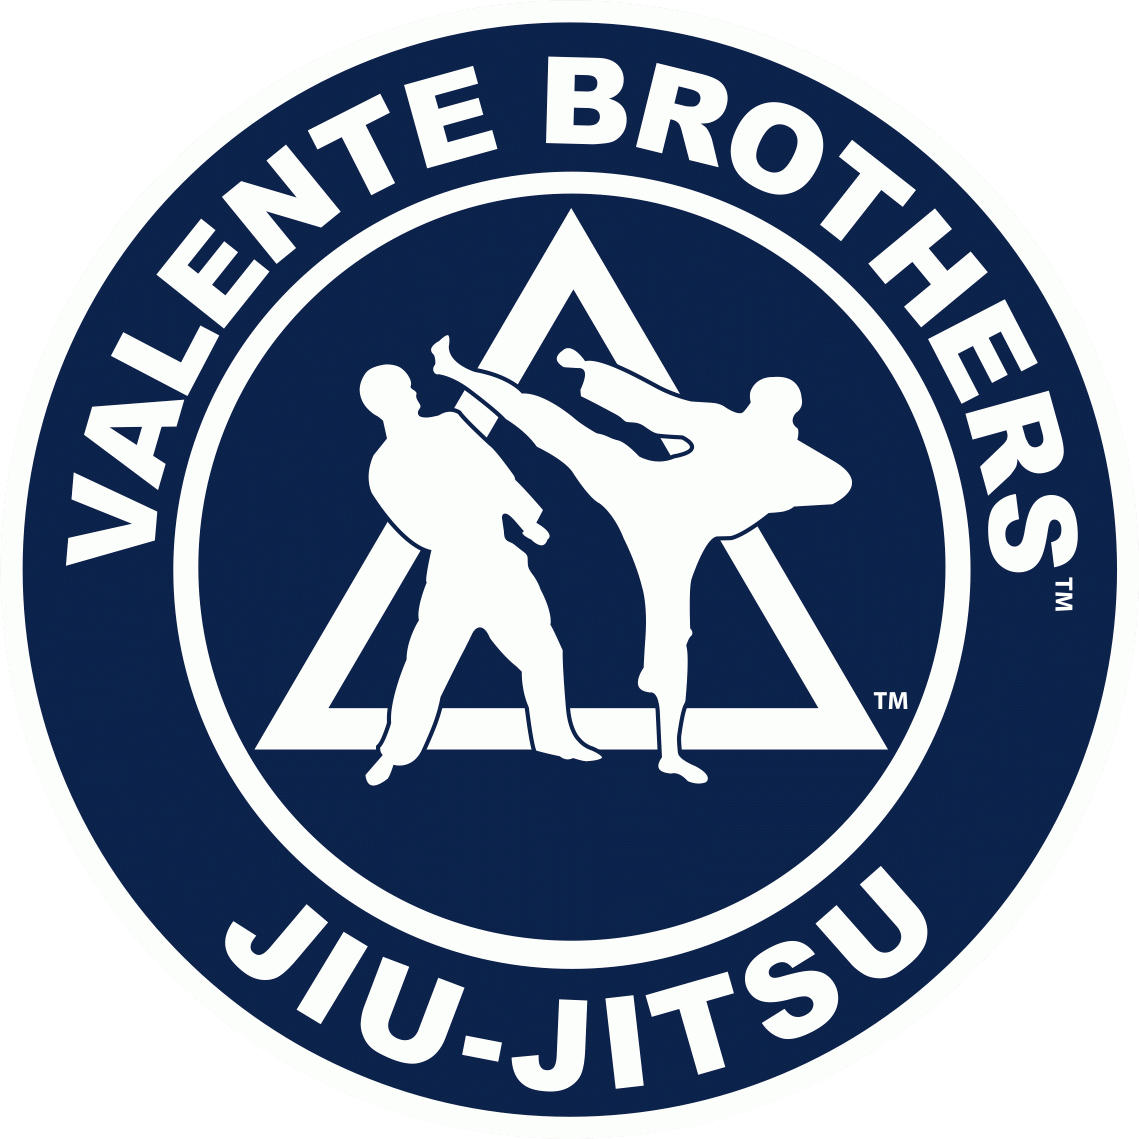 Valente Brothers